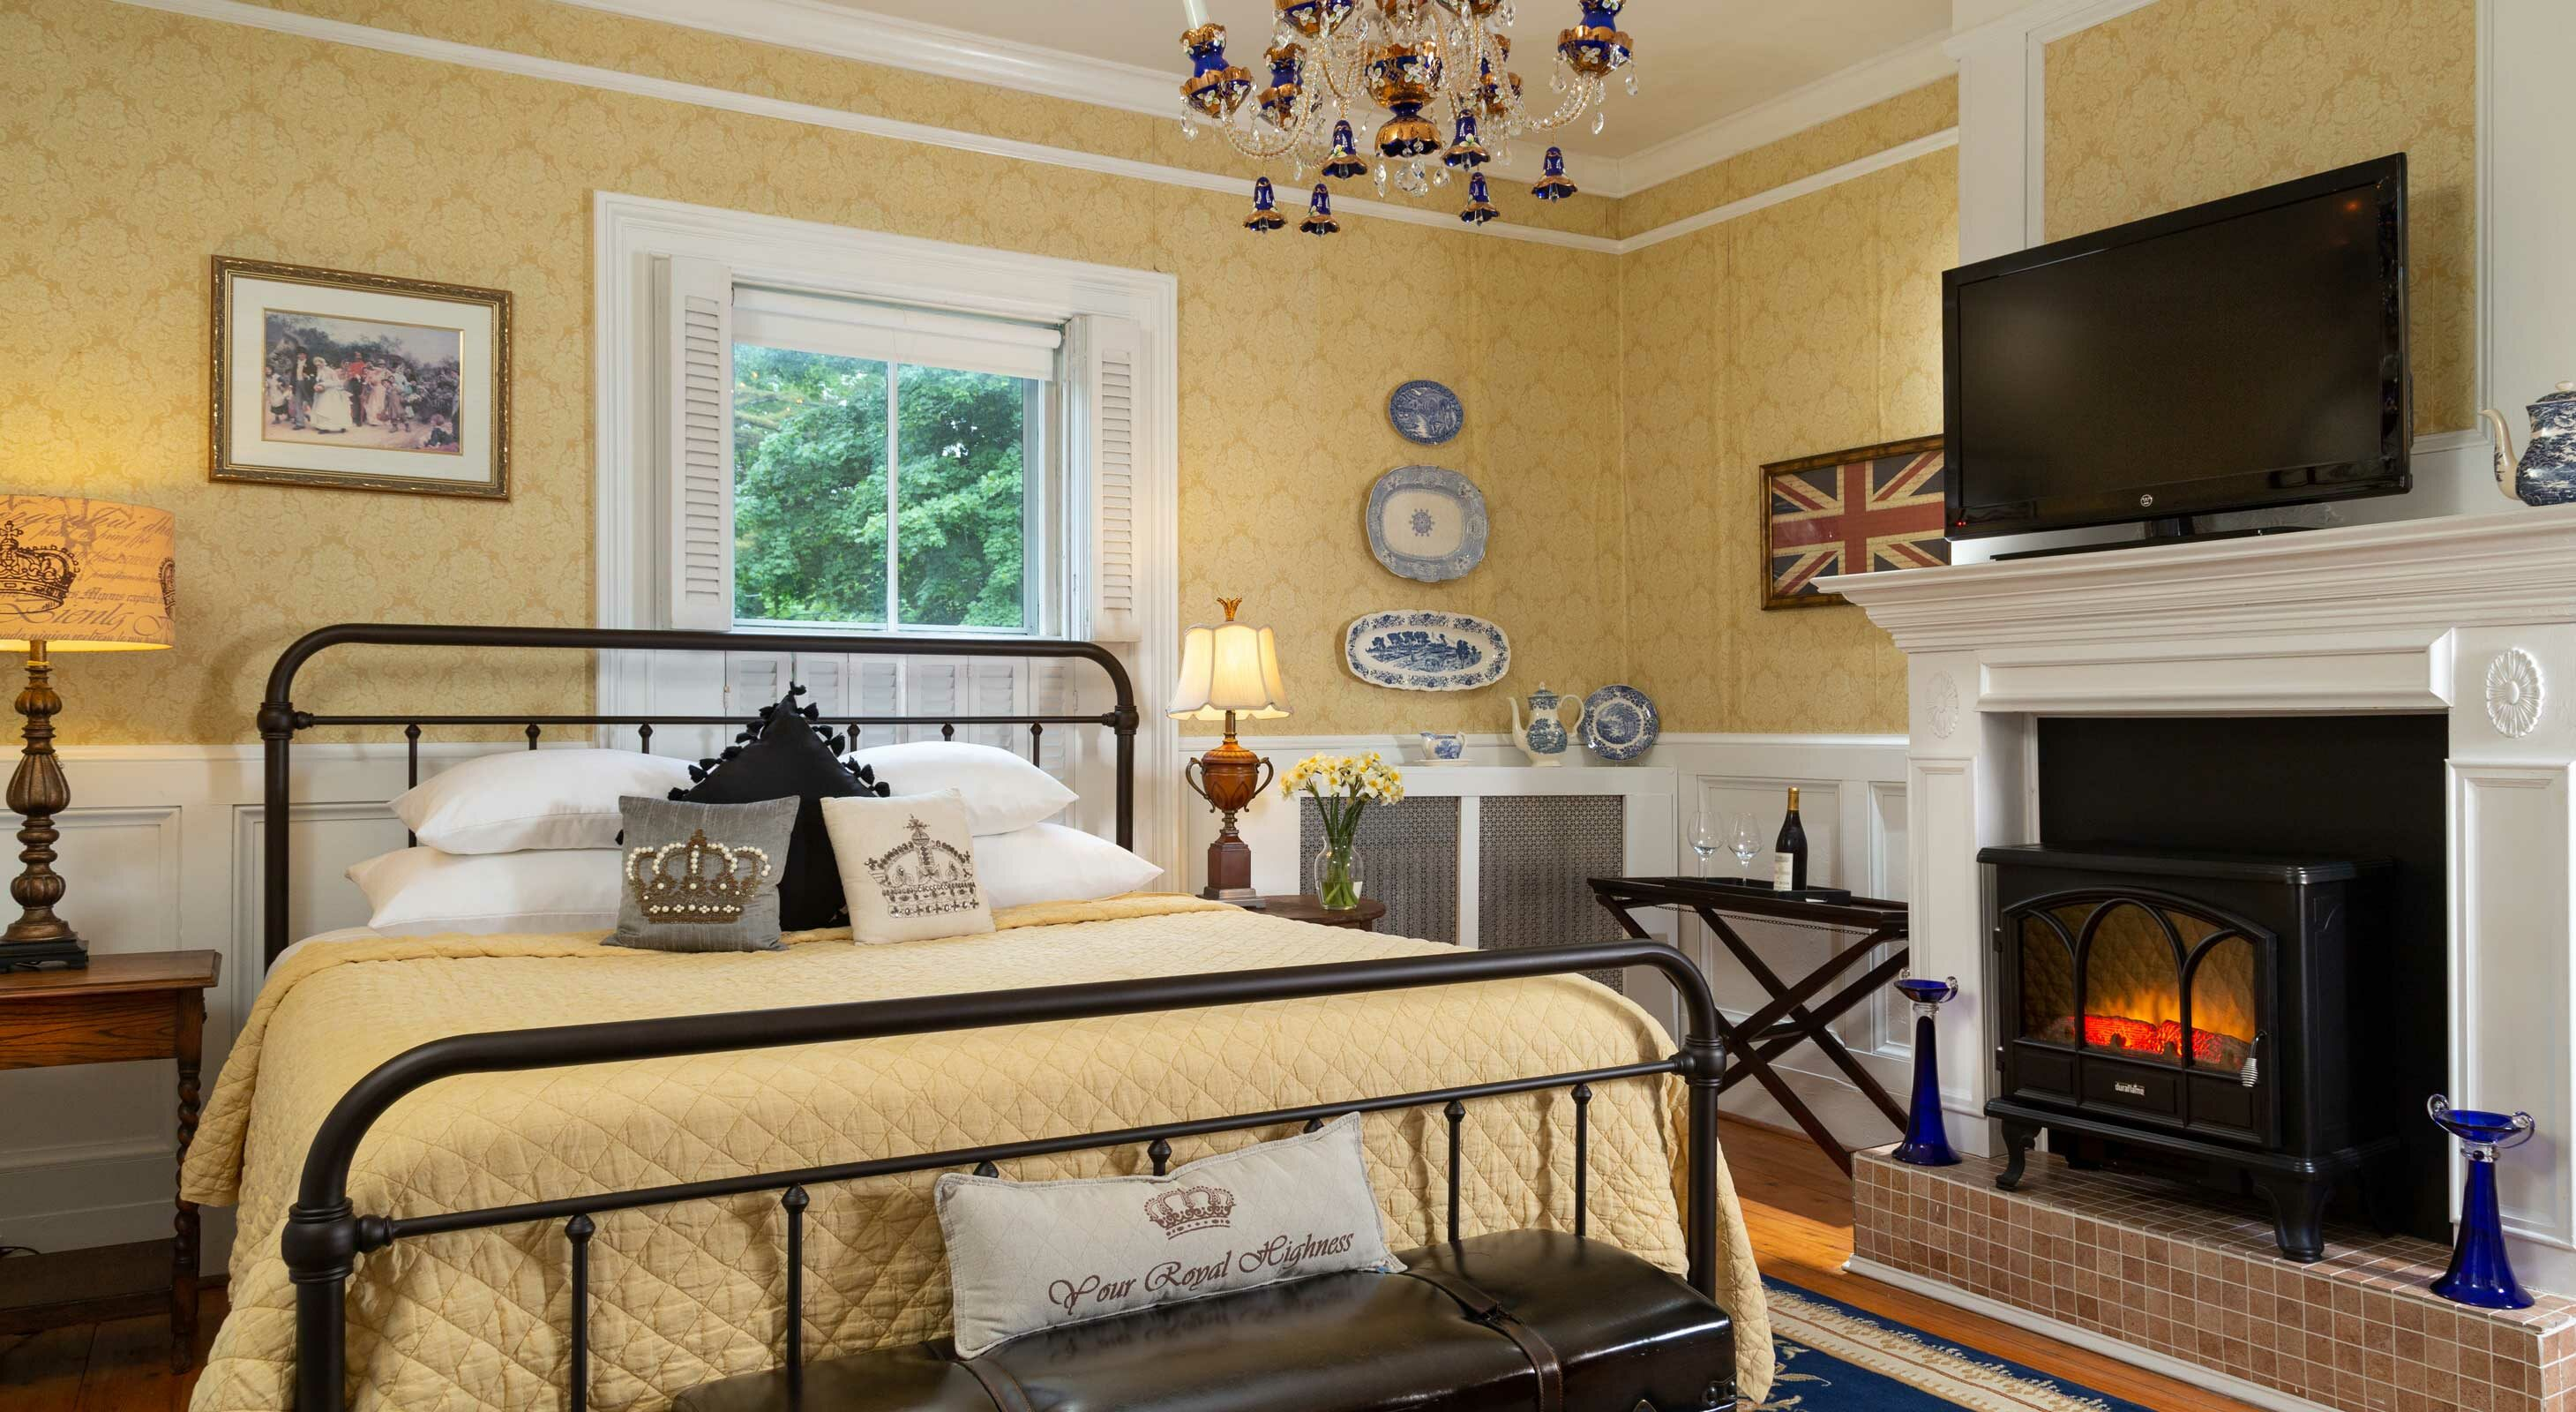 King bed in a room with a blue rug, hardwood floors, and fireplace